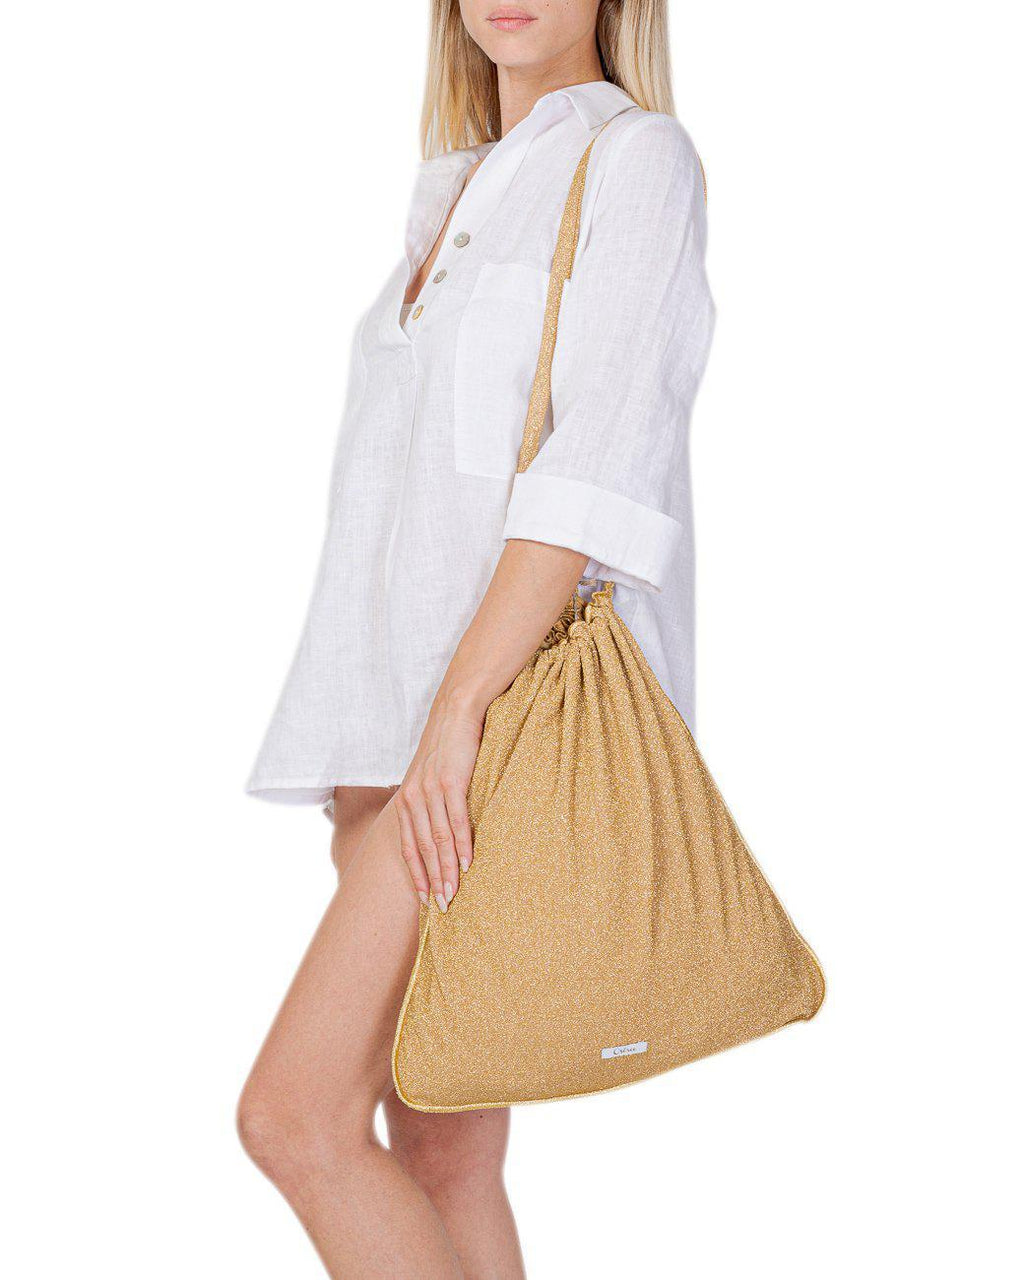 BEIGE LUREX DRAWSTRING TOTE BAG